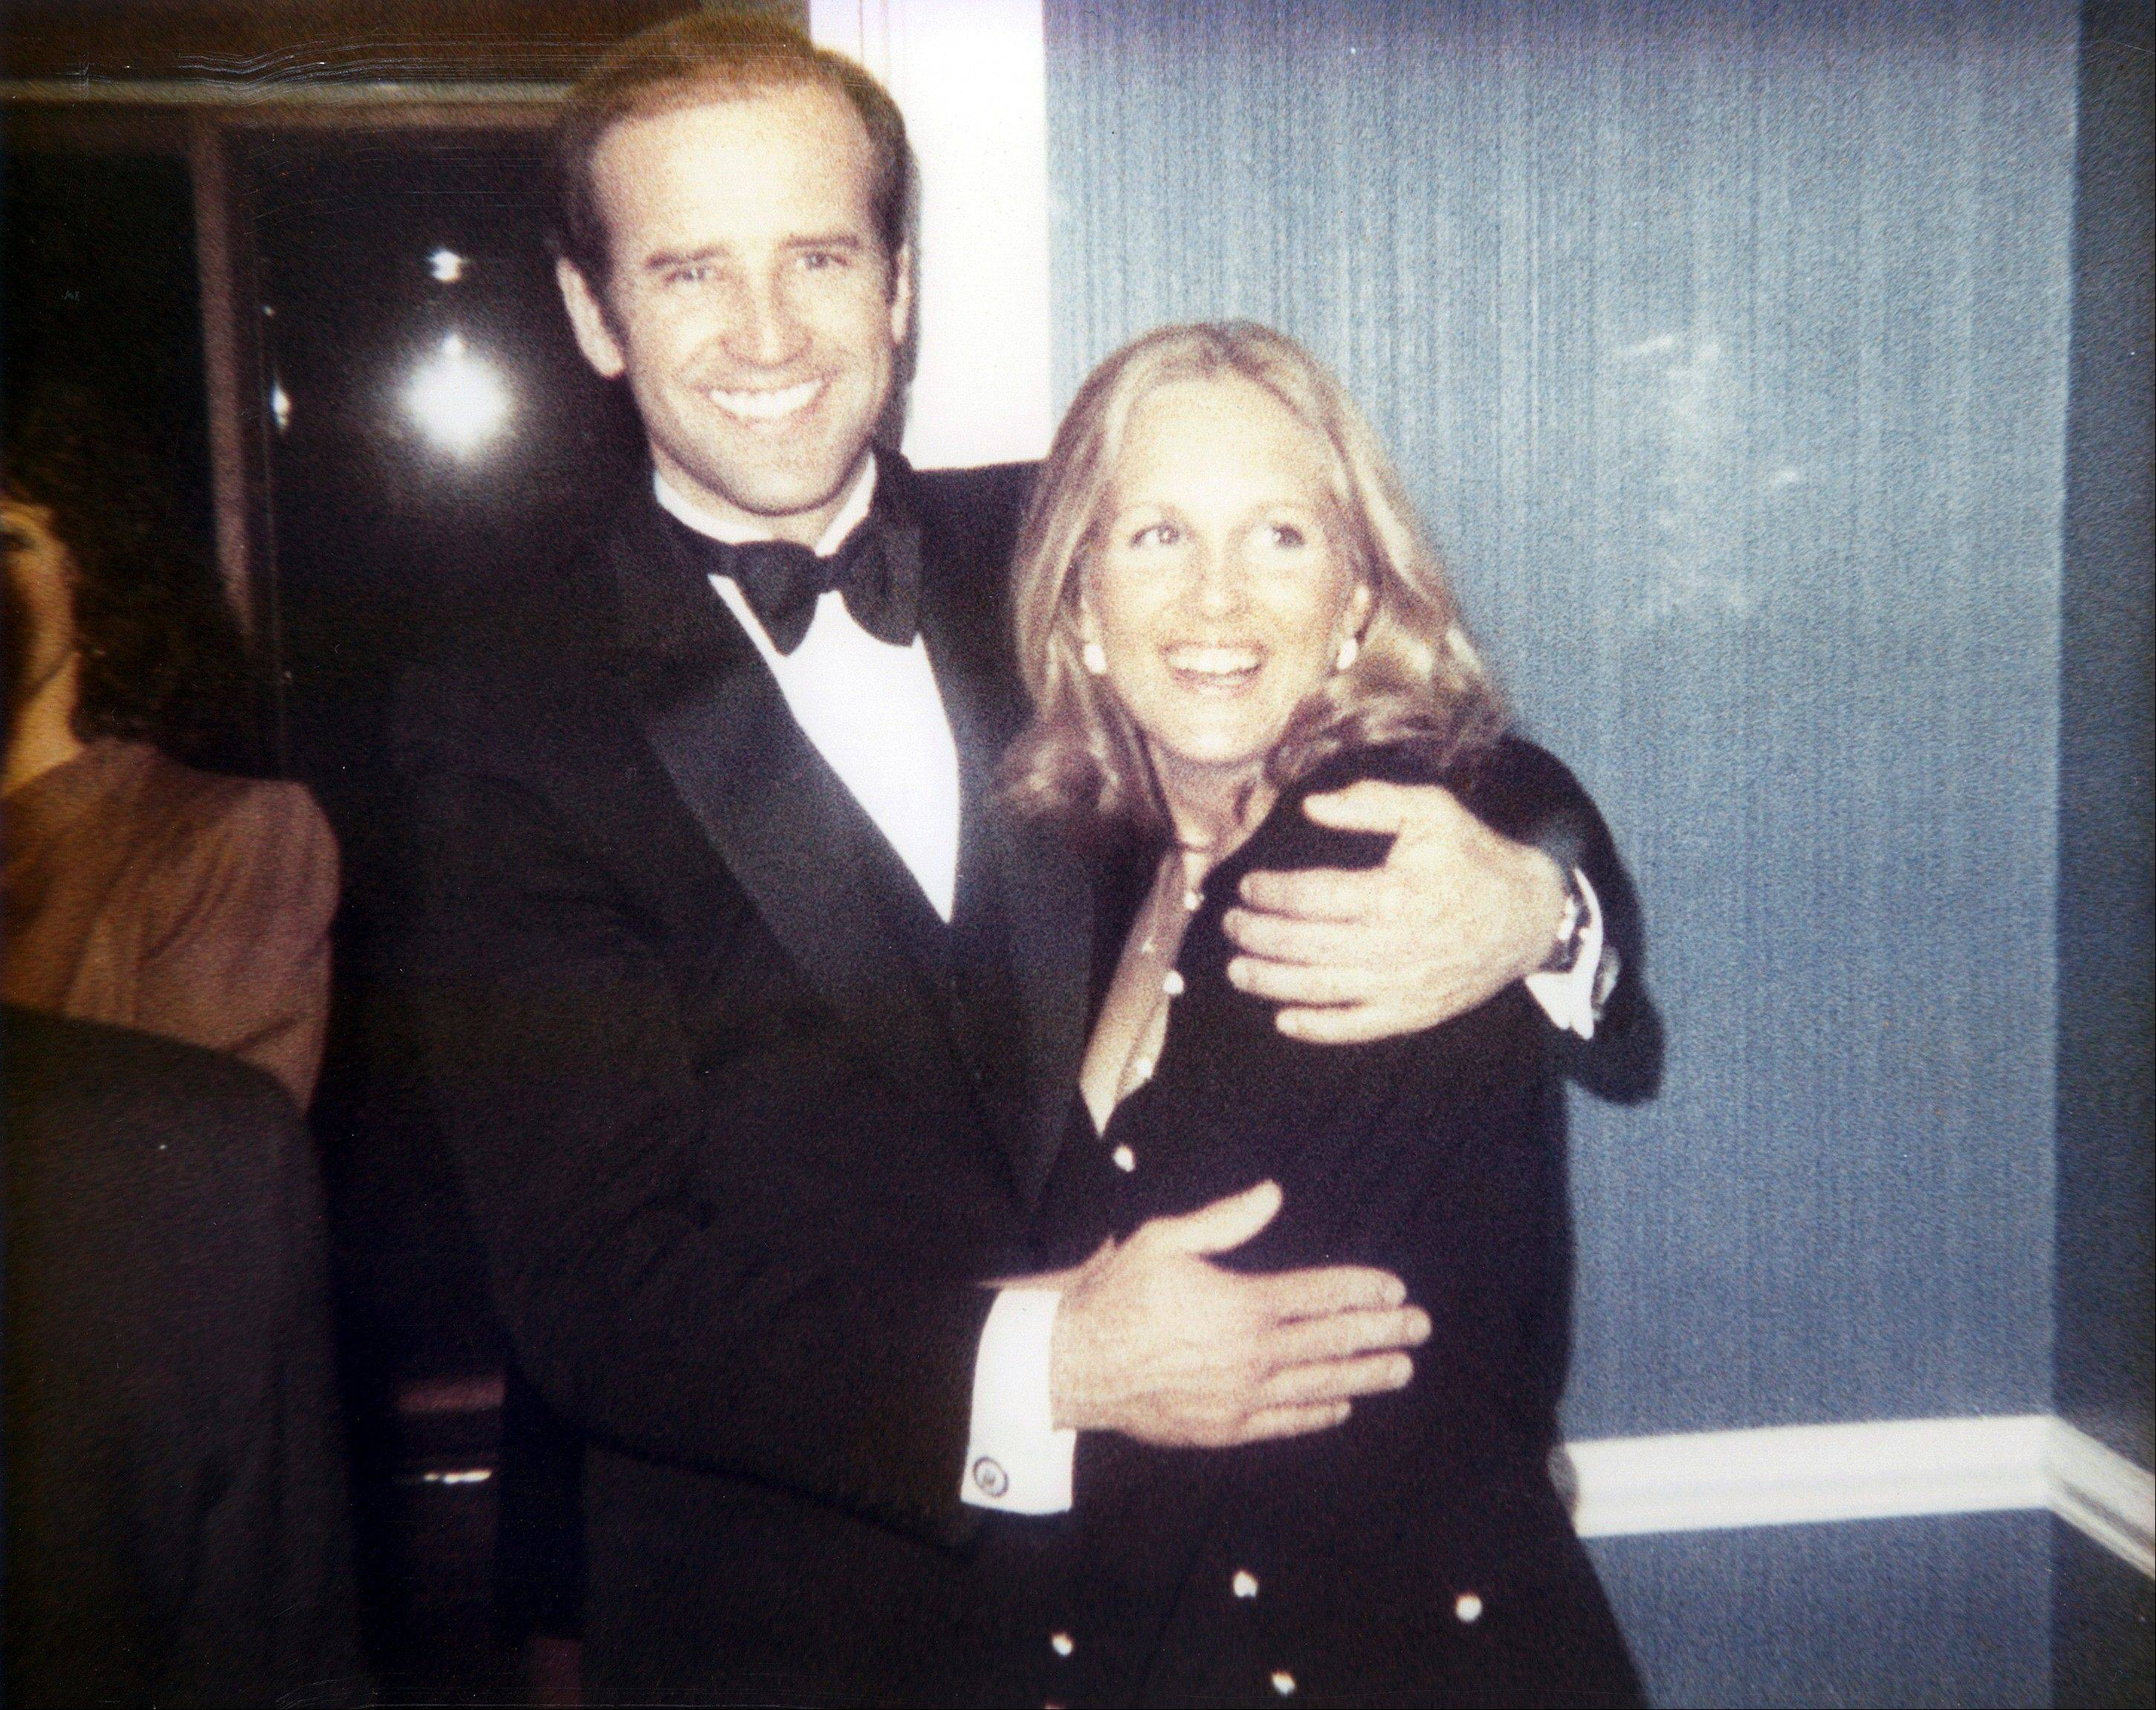 In this photo provided by Sen. Biden's office, then-Sen. Joe Biden, D-Del., and his wife Jill, are seen in this undated photo. In May, after Joe Biden tripped up his boss by voicing support for same-sex marriage while the president remained on the fence, there was speculation about whether the remarks were spontaneous or deliberate. But to those who know Biden, there was no doubt. He was just speaking his mind.